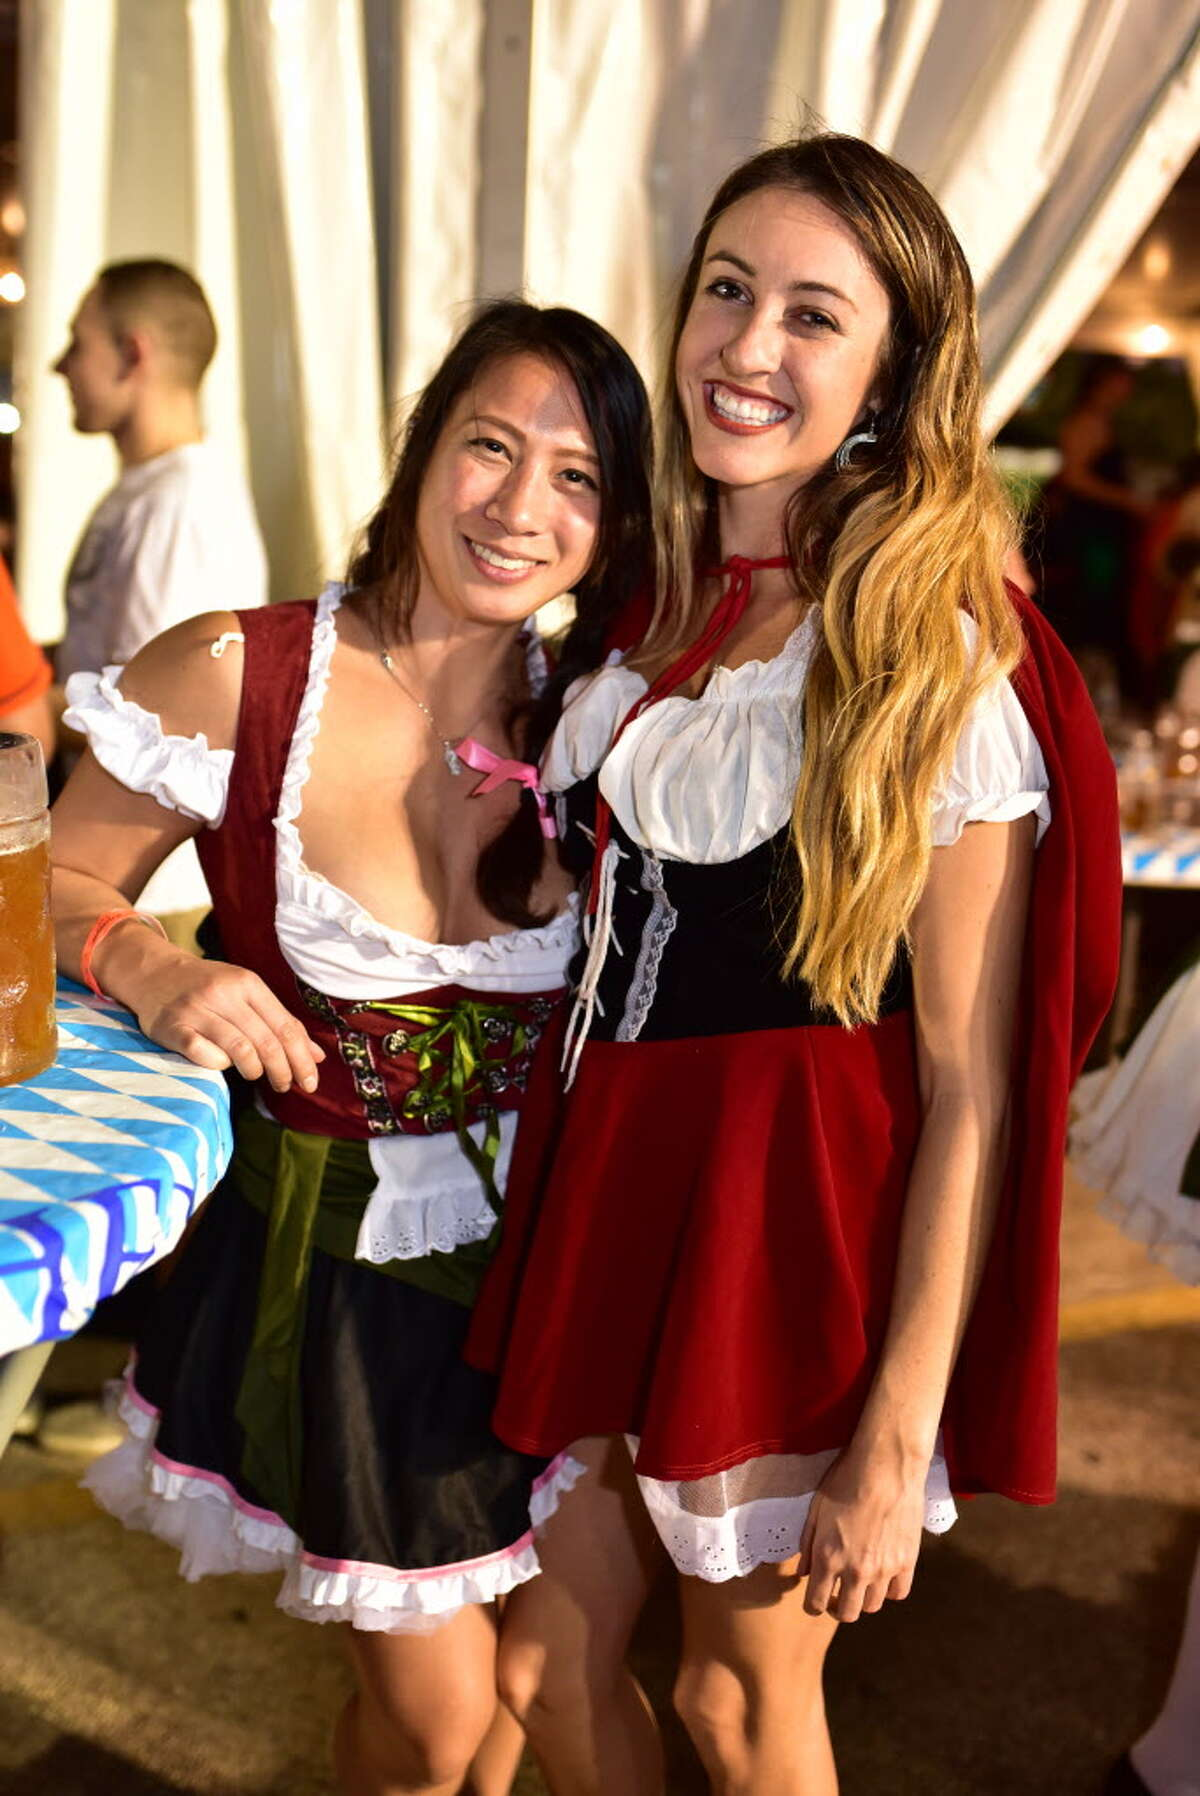 PHOTOS: Scenes from 2017 Oktoberfest King's BierHaus in Houston will hold its annual Oktoberfest celebration Oct. 19-21 with games, music, prizes and, yes, a lot of beer.